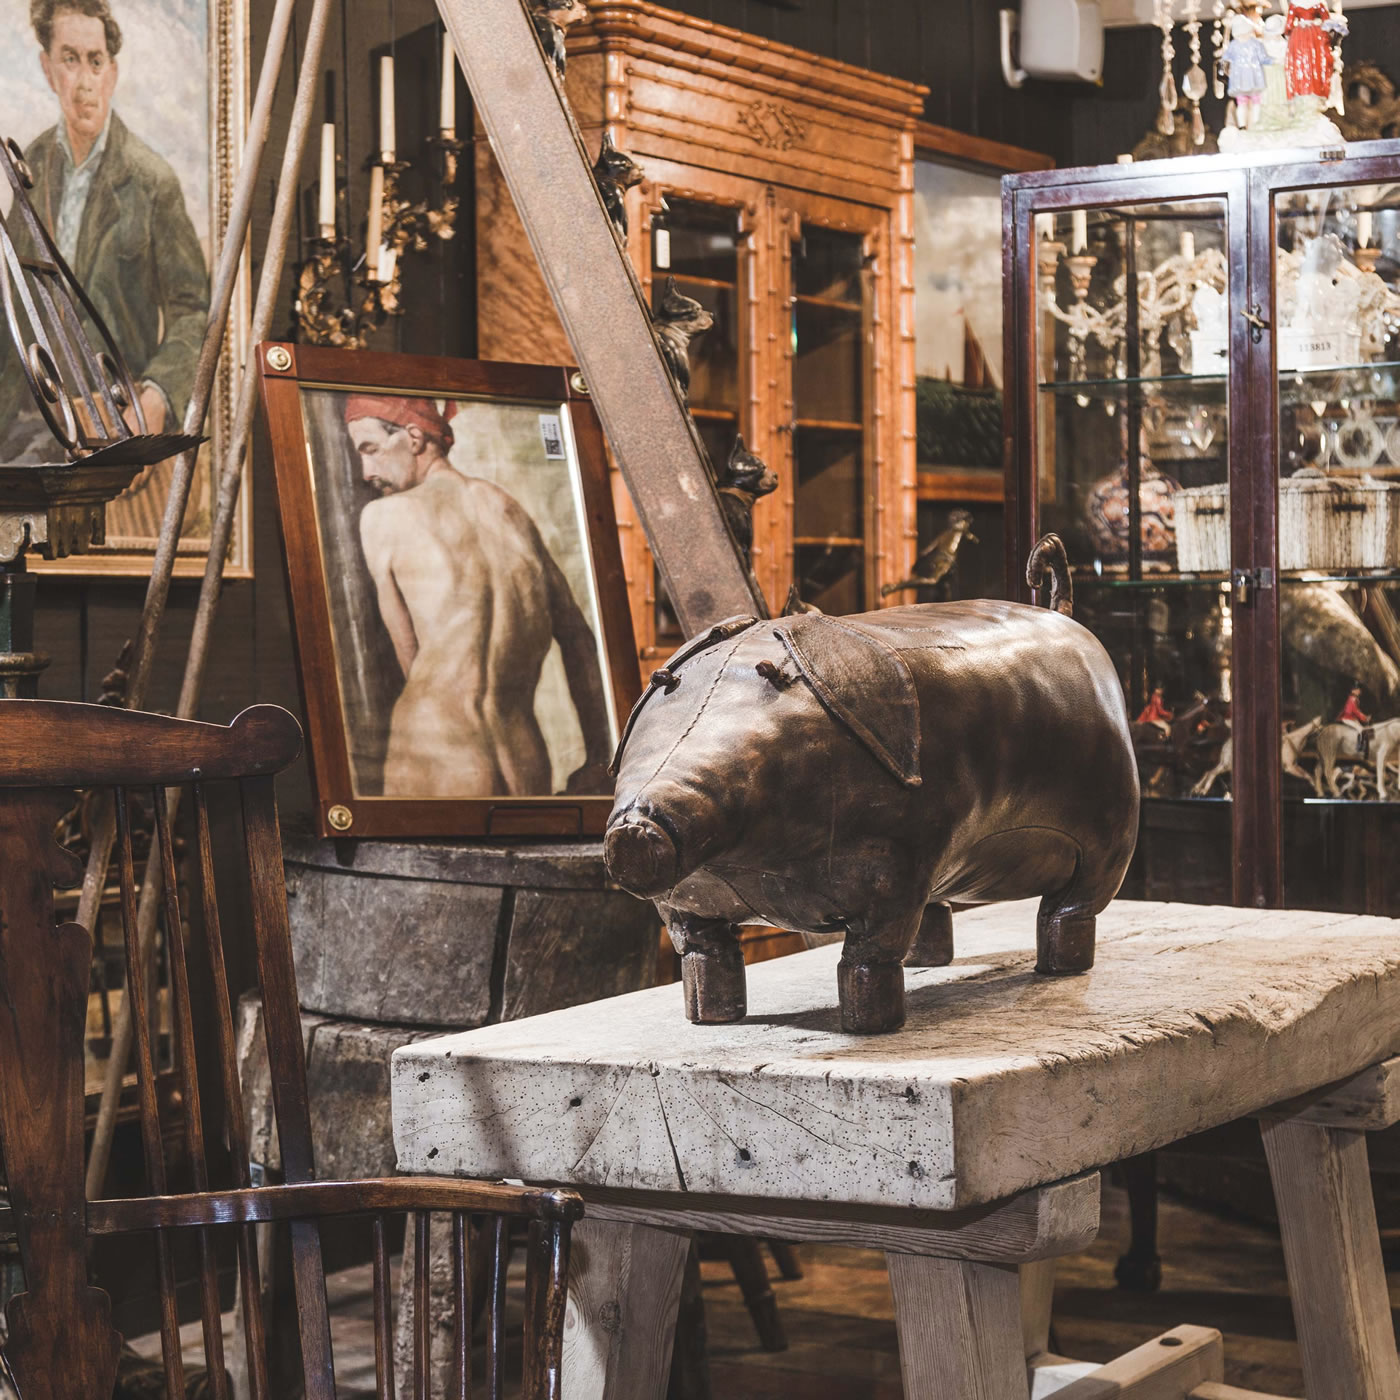 Image of Spencer Swaffers Antiques Shop